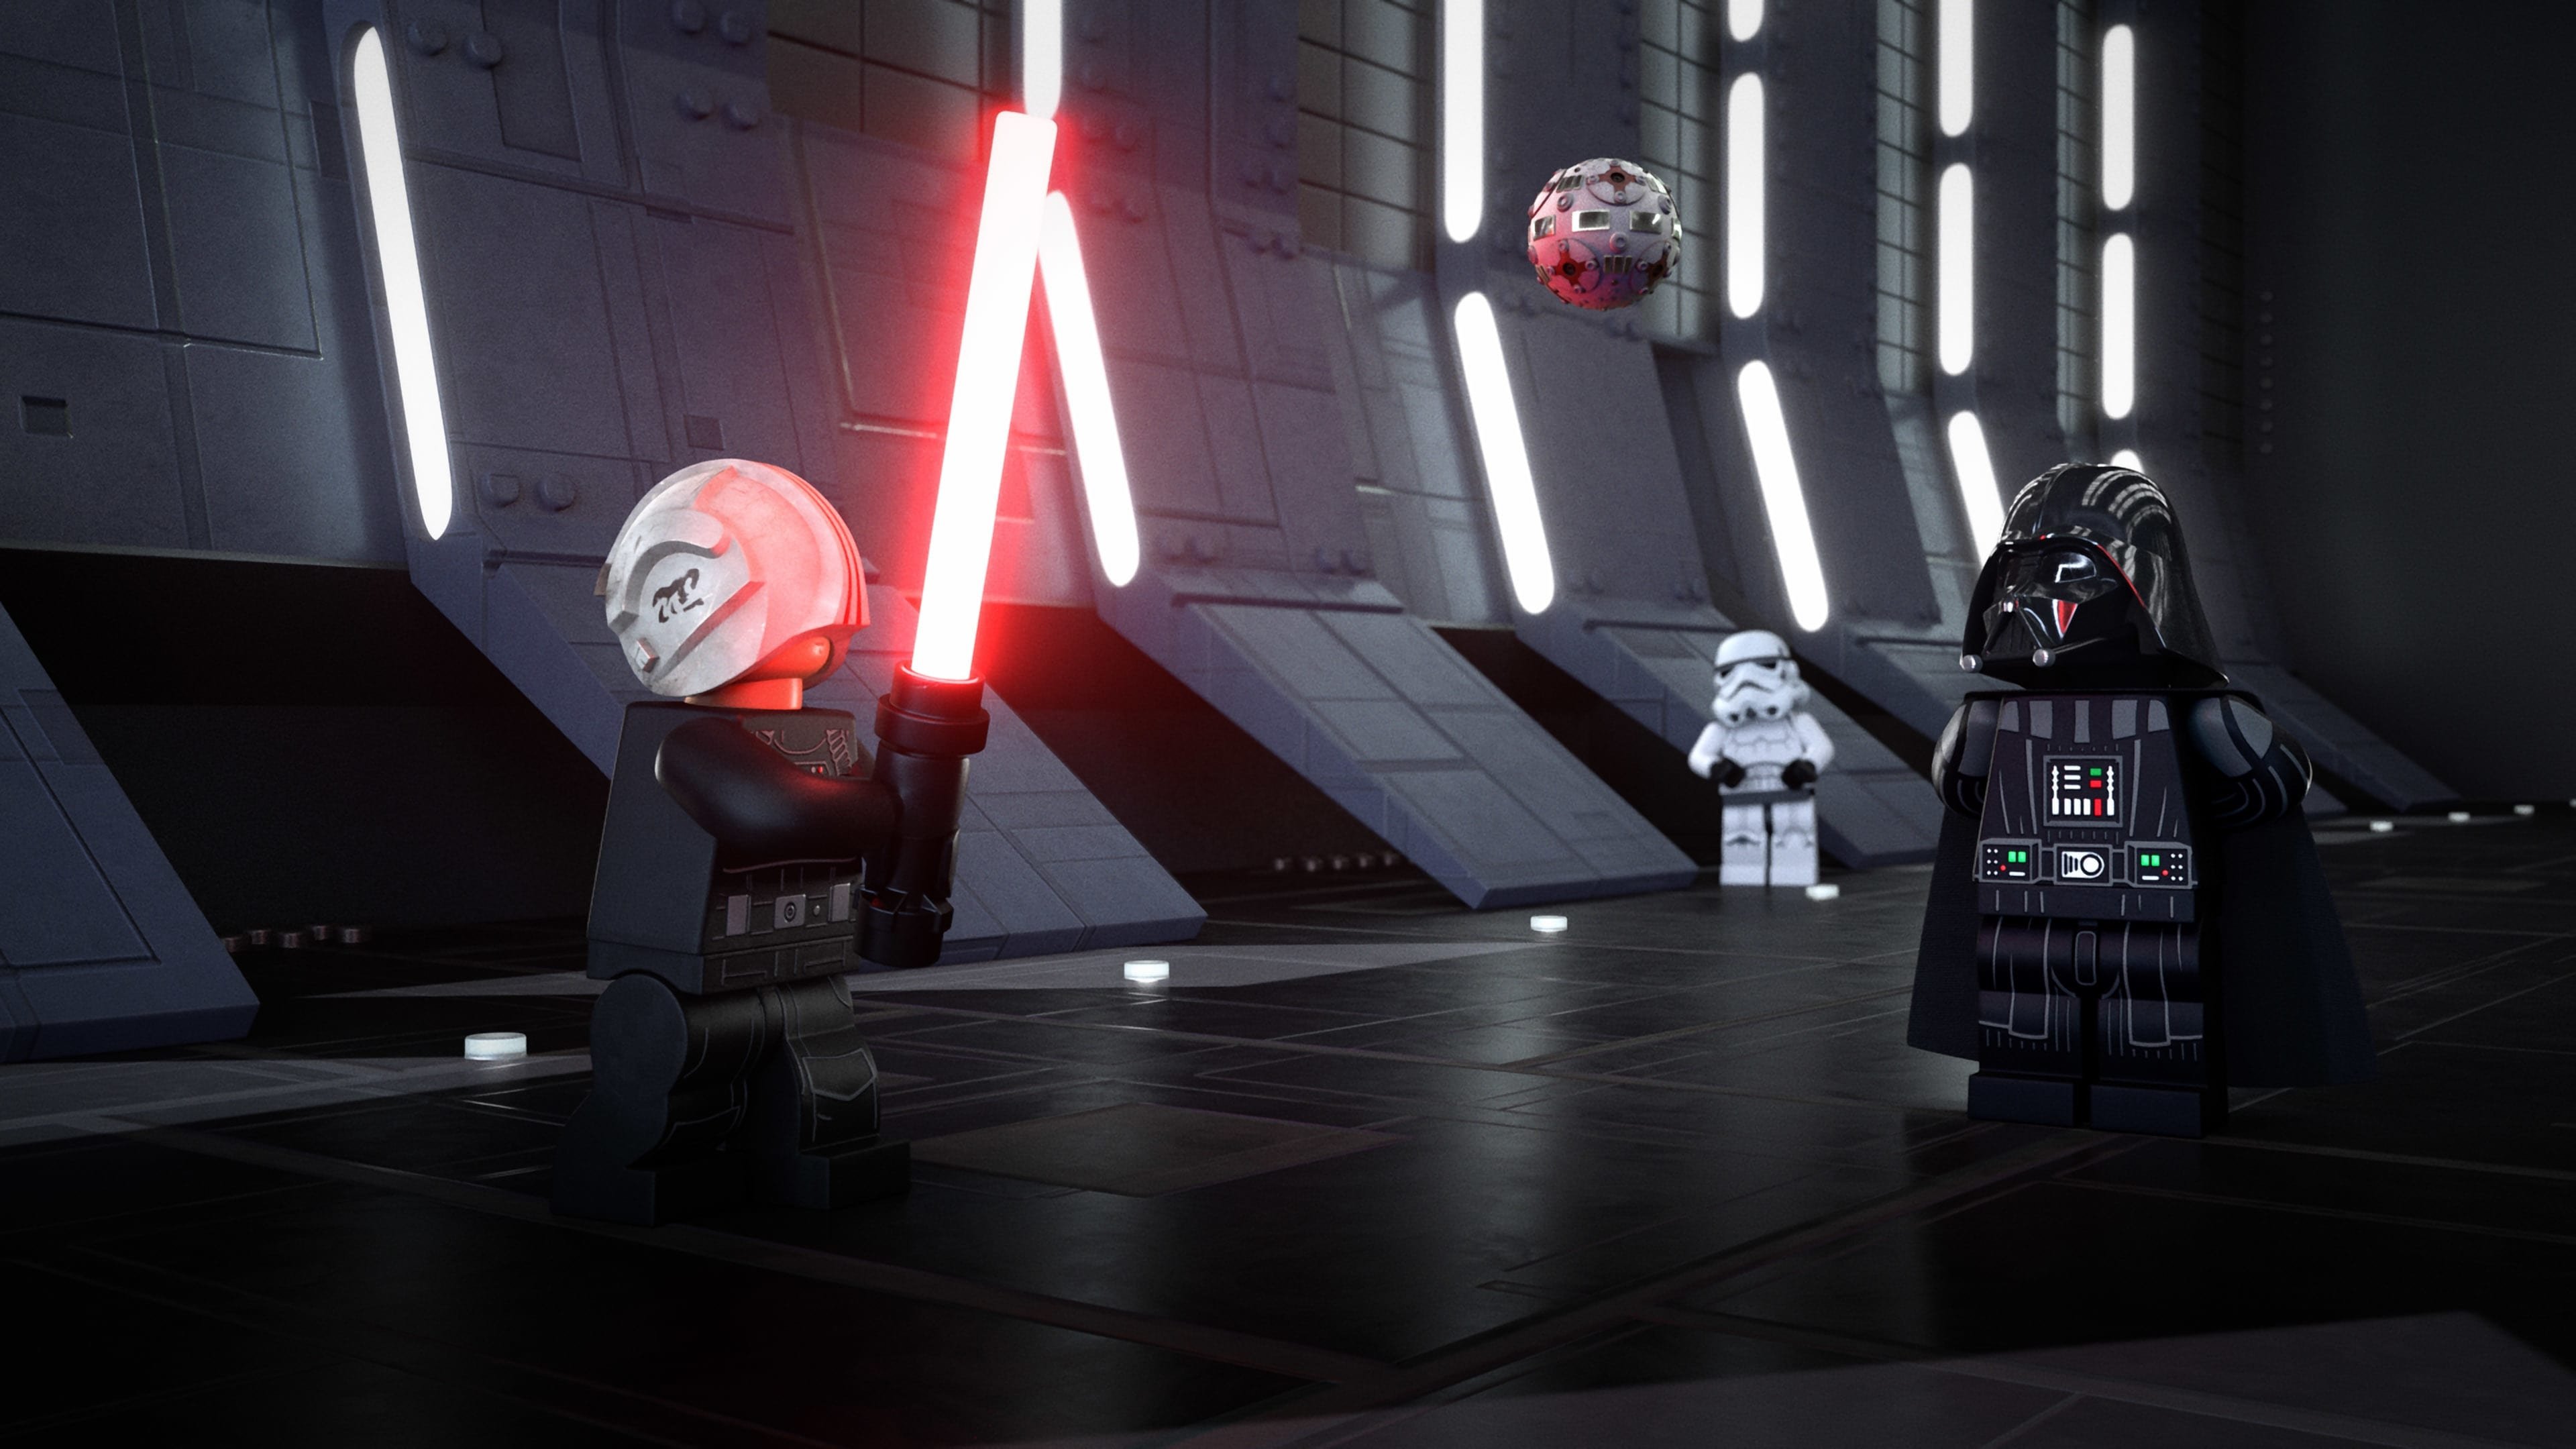 """(L-R): Darth Vader trains Luke Skywalker in the tale of """"The Wookiee's Paw"""" in LEGO STAR WARS TERRIFYING TALES exclusively on Disney+. ©2021 Lucasfilm Ltd. & TM. All Rights Reserved."""